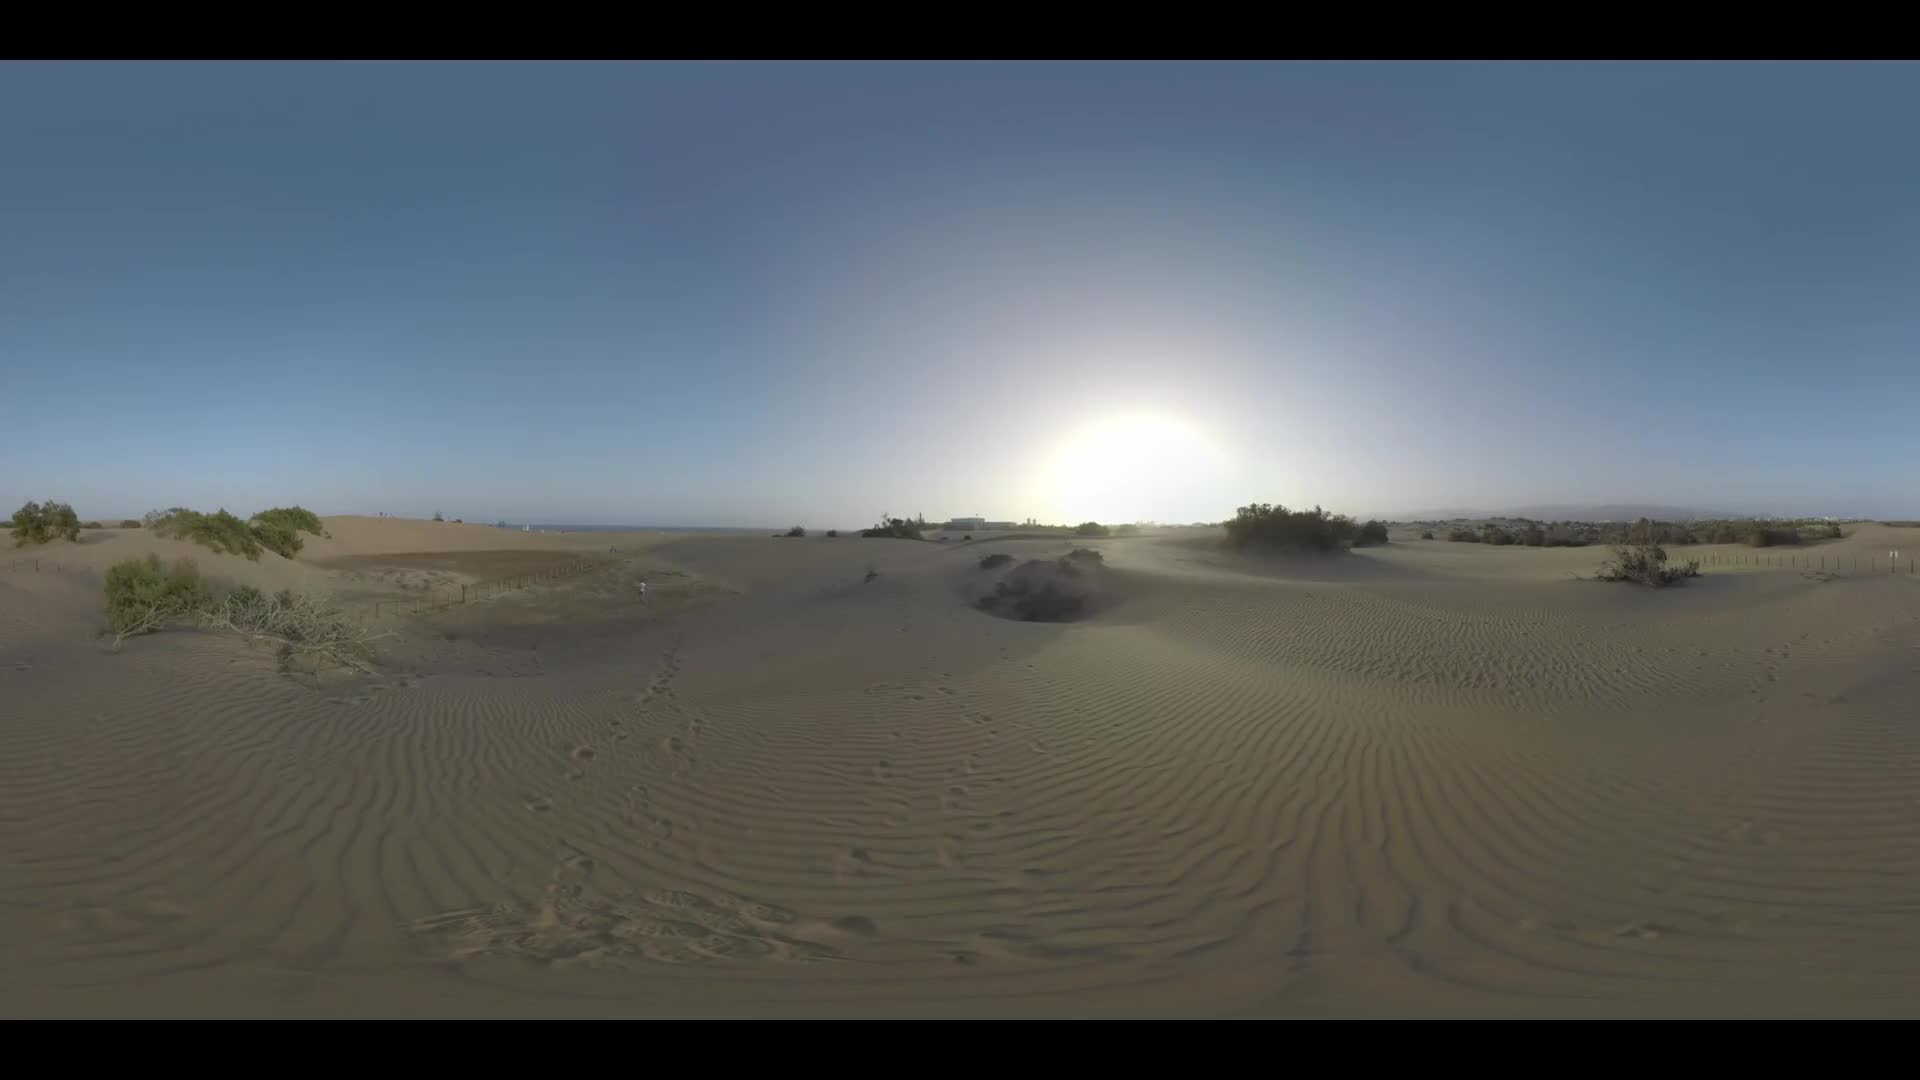 360 VR Video. Sandy landscape with Maspalomas Dunes and rare green plants on the ocean coast at sunset. Man (with model release) walking into the distance